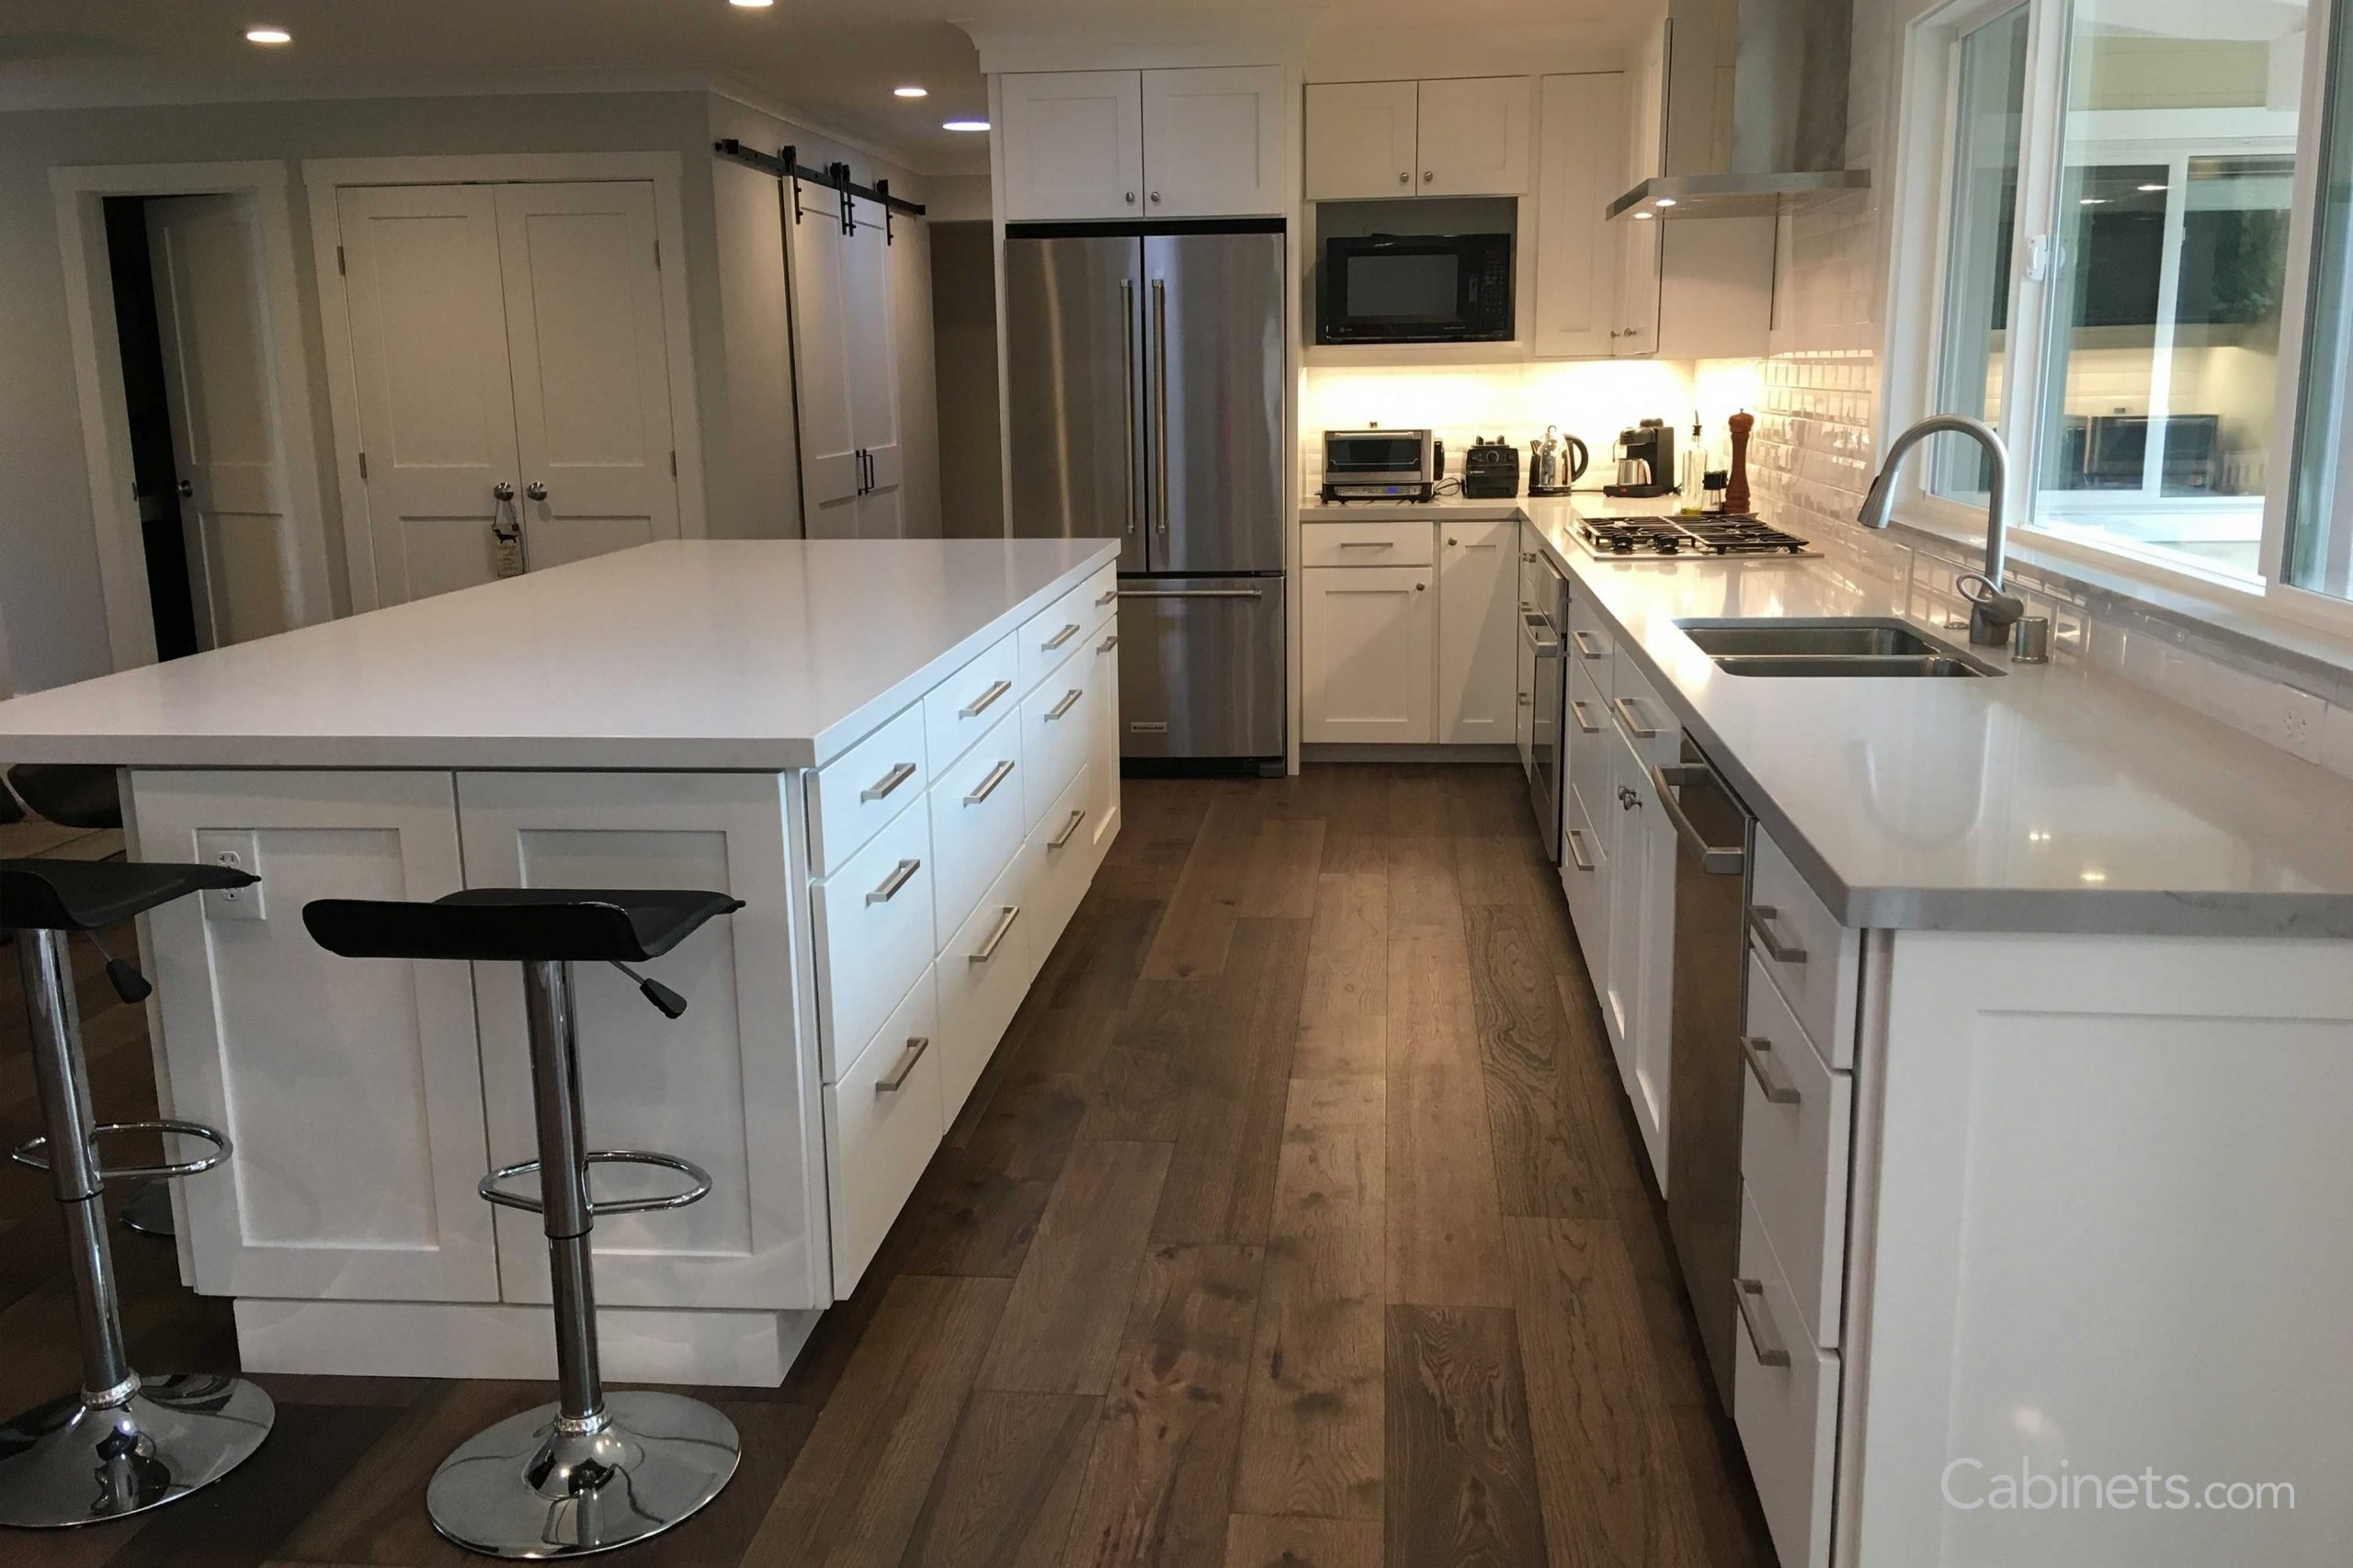 Pin by Danielle Colegrove on Kitchen ideas  Kitchen with long  - Long Island Kitchen Cabinets Wholesale